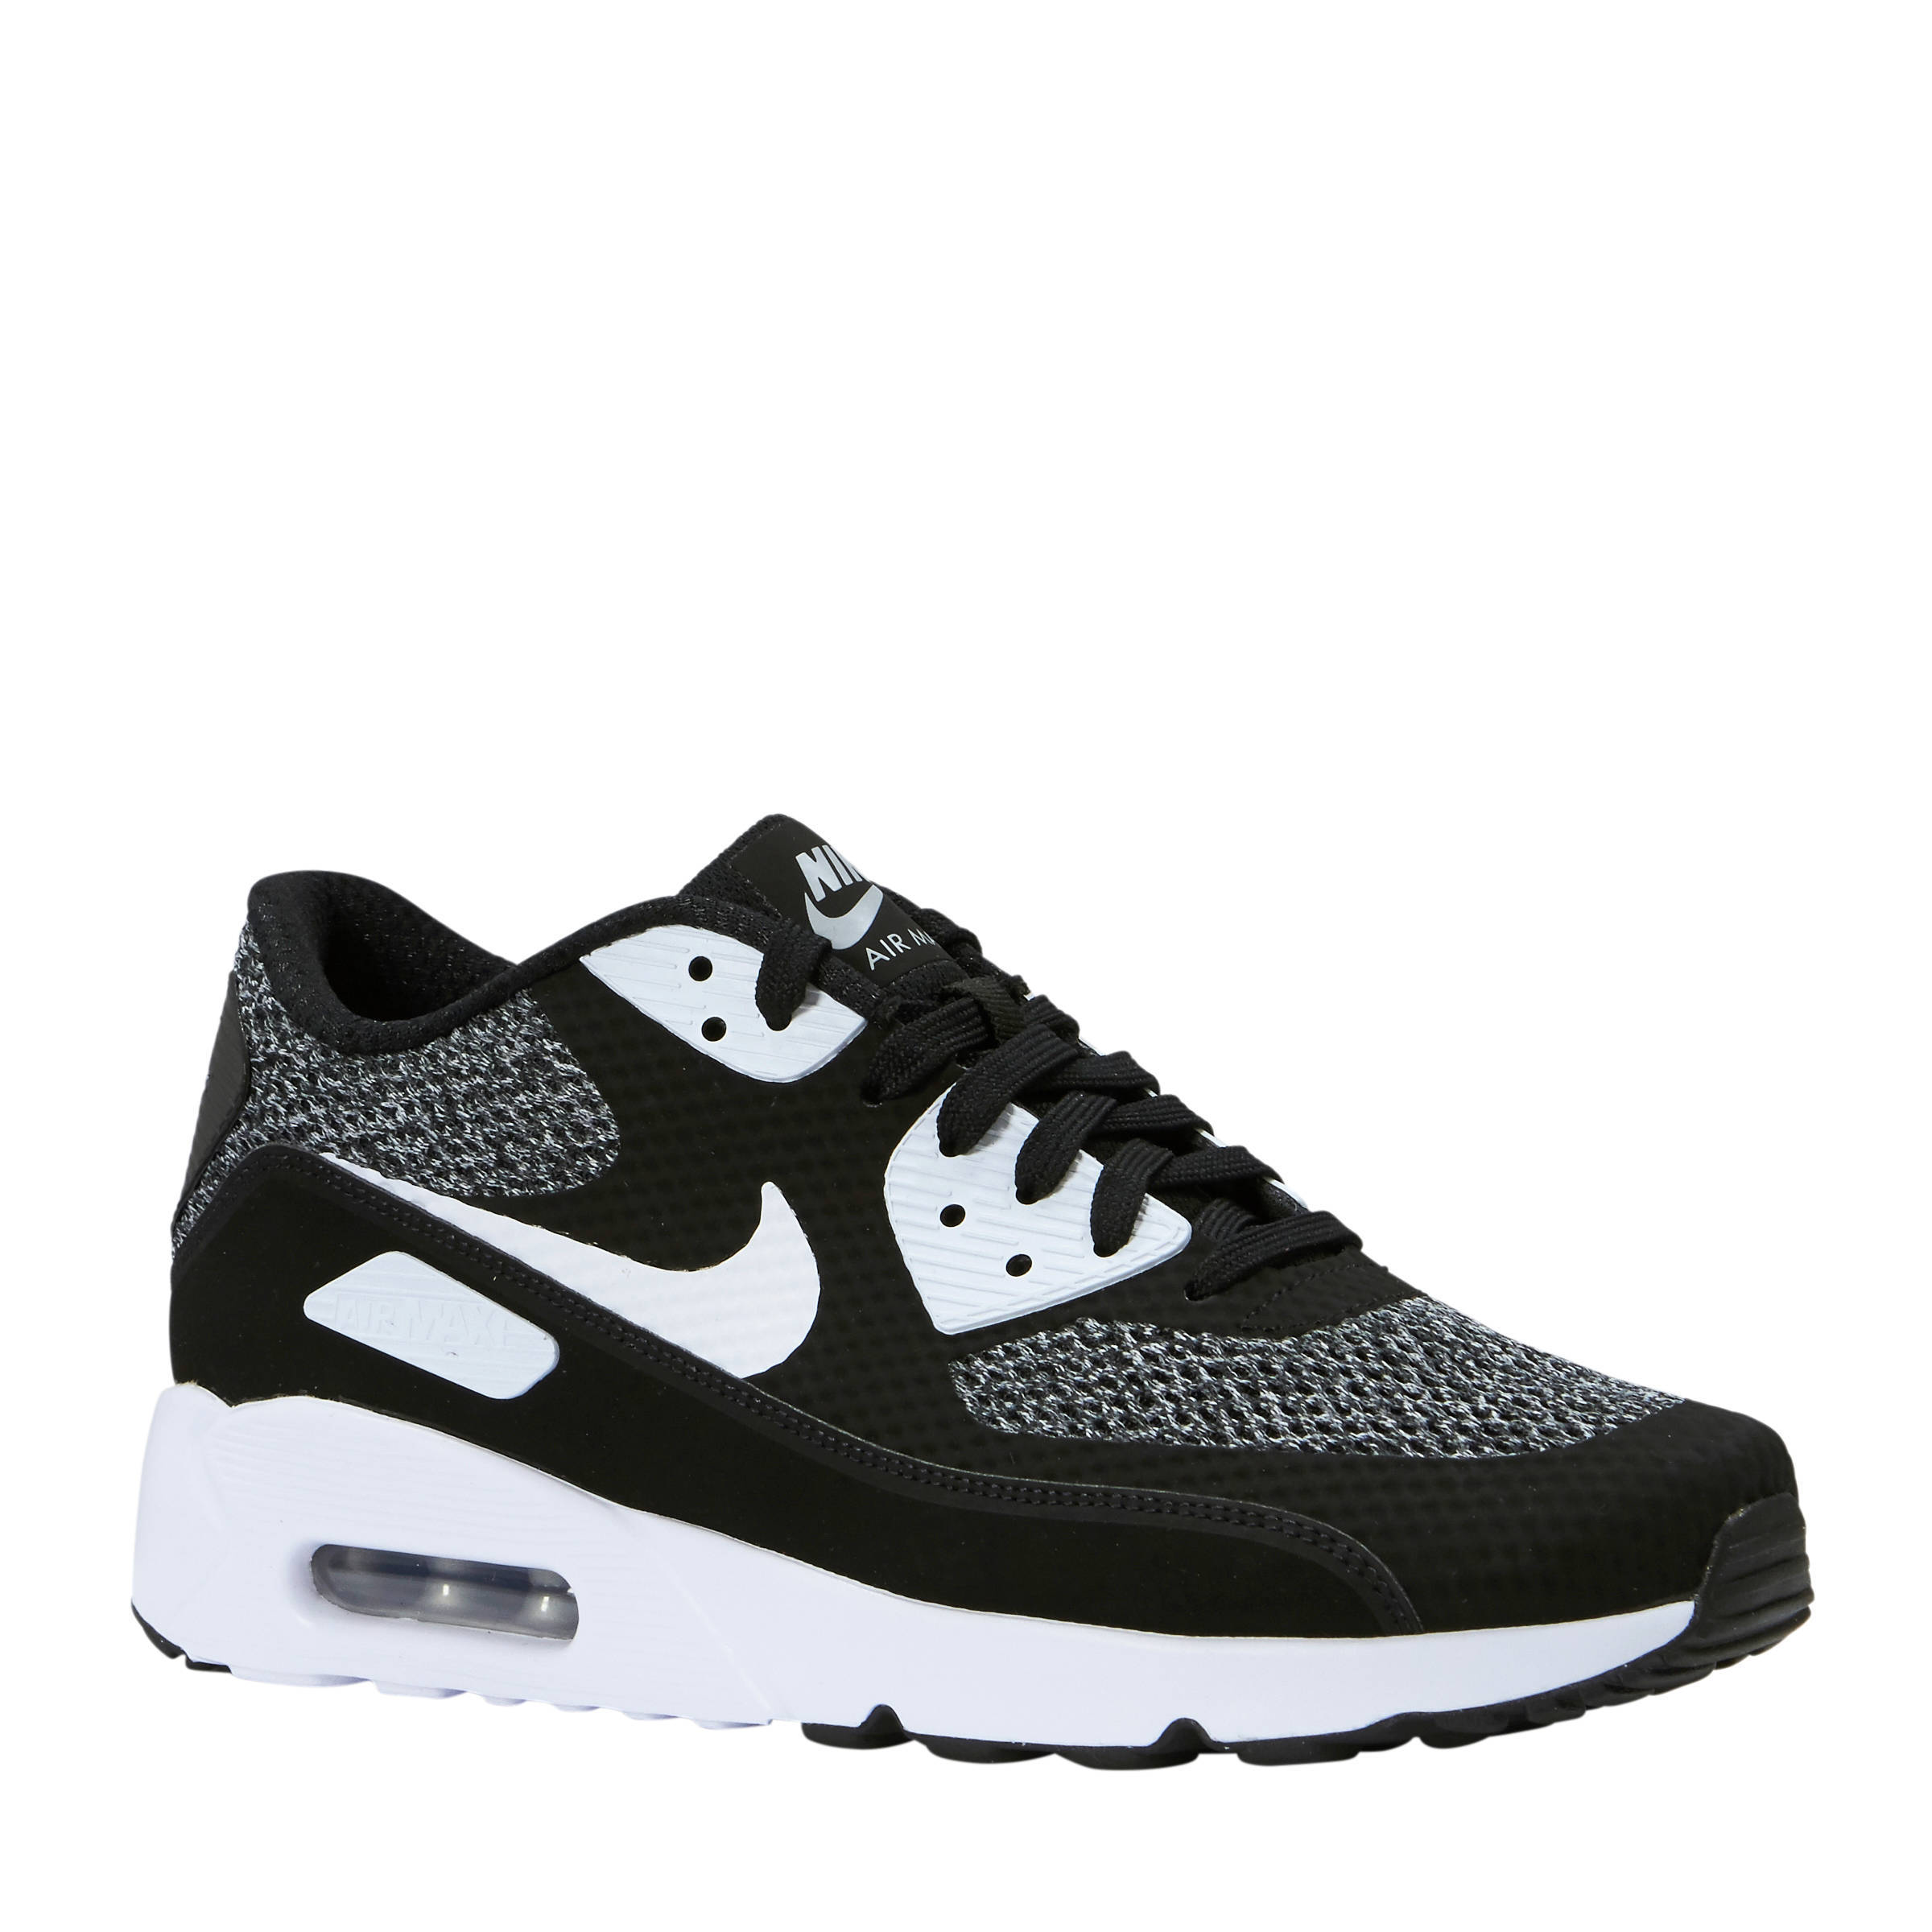 size 40 96e31 540a9 nike-air-max-90-ultra-2-0-essential-sneakers-zwart-0884499605652.jpg